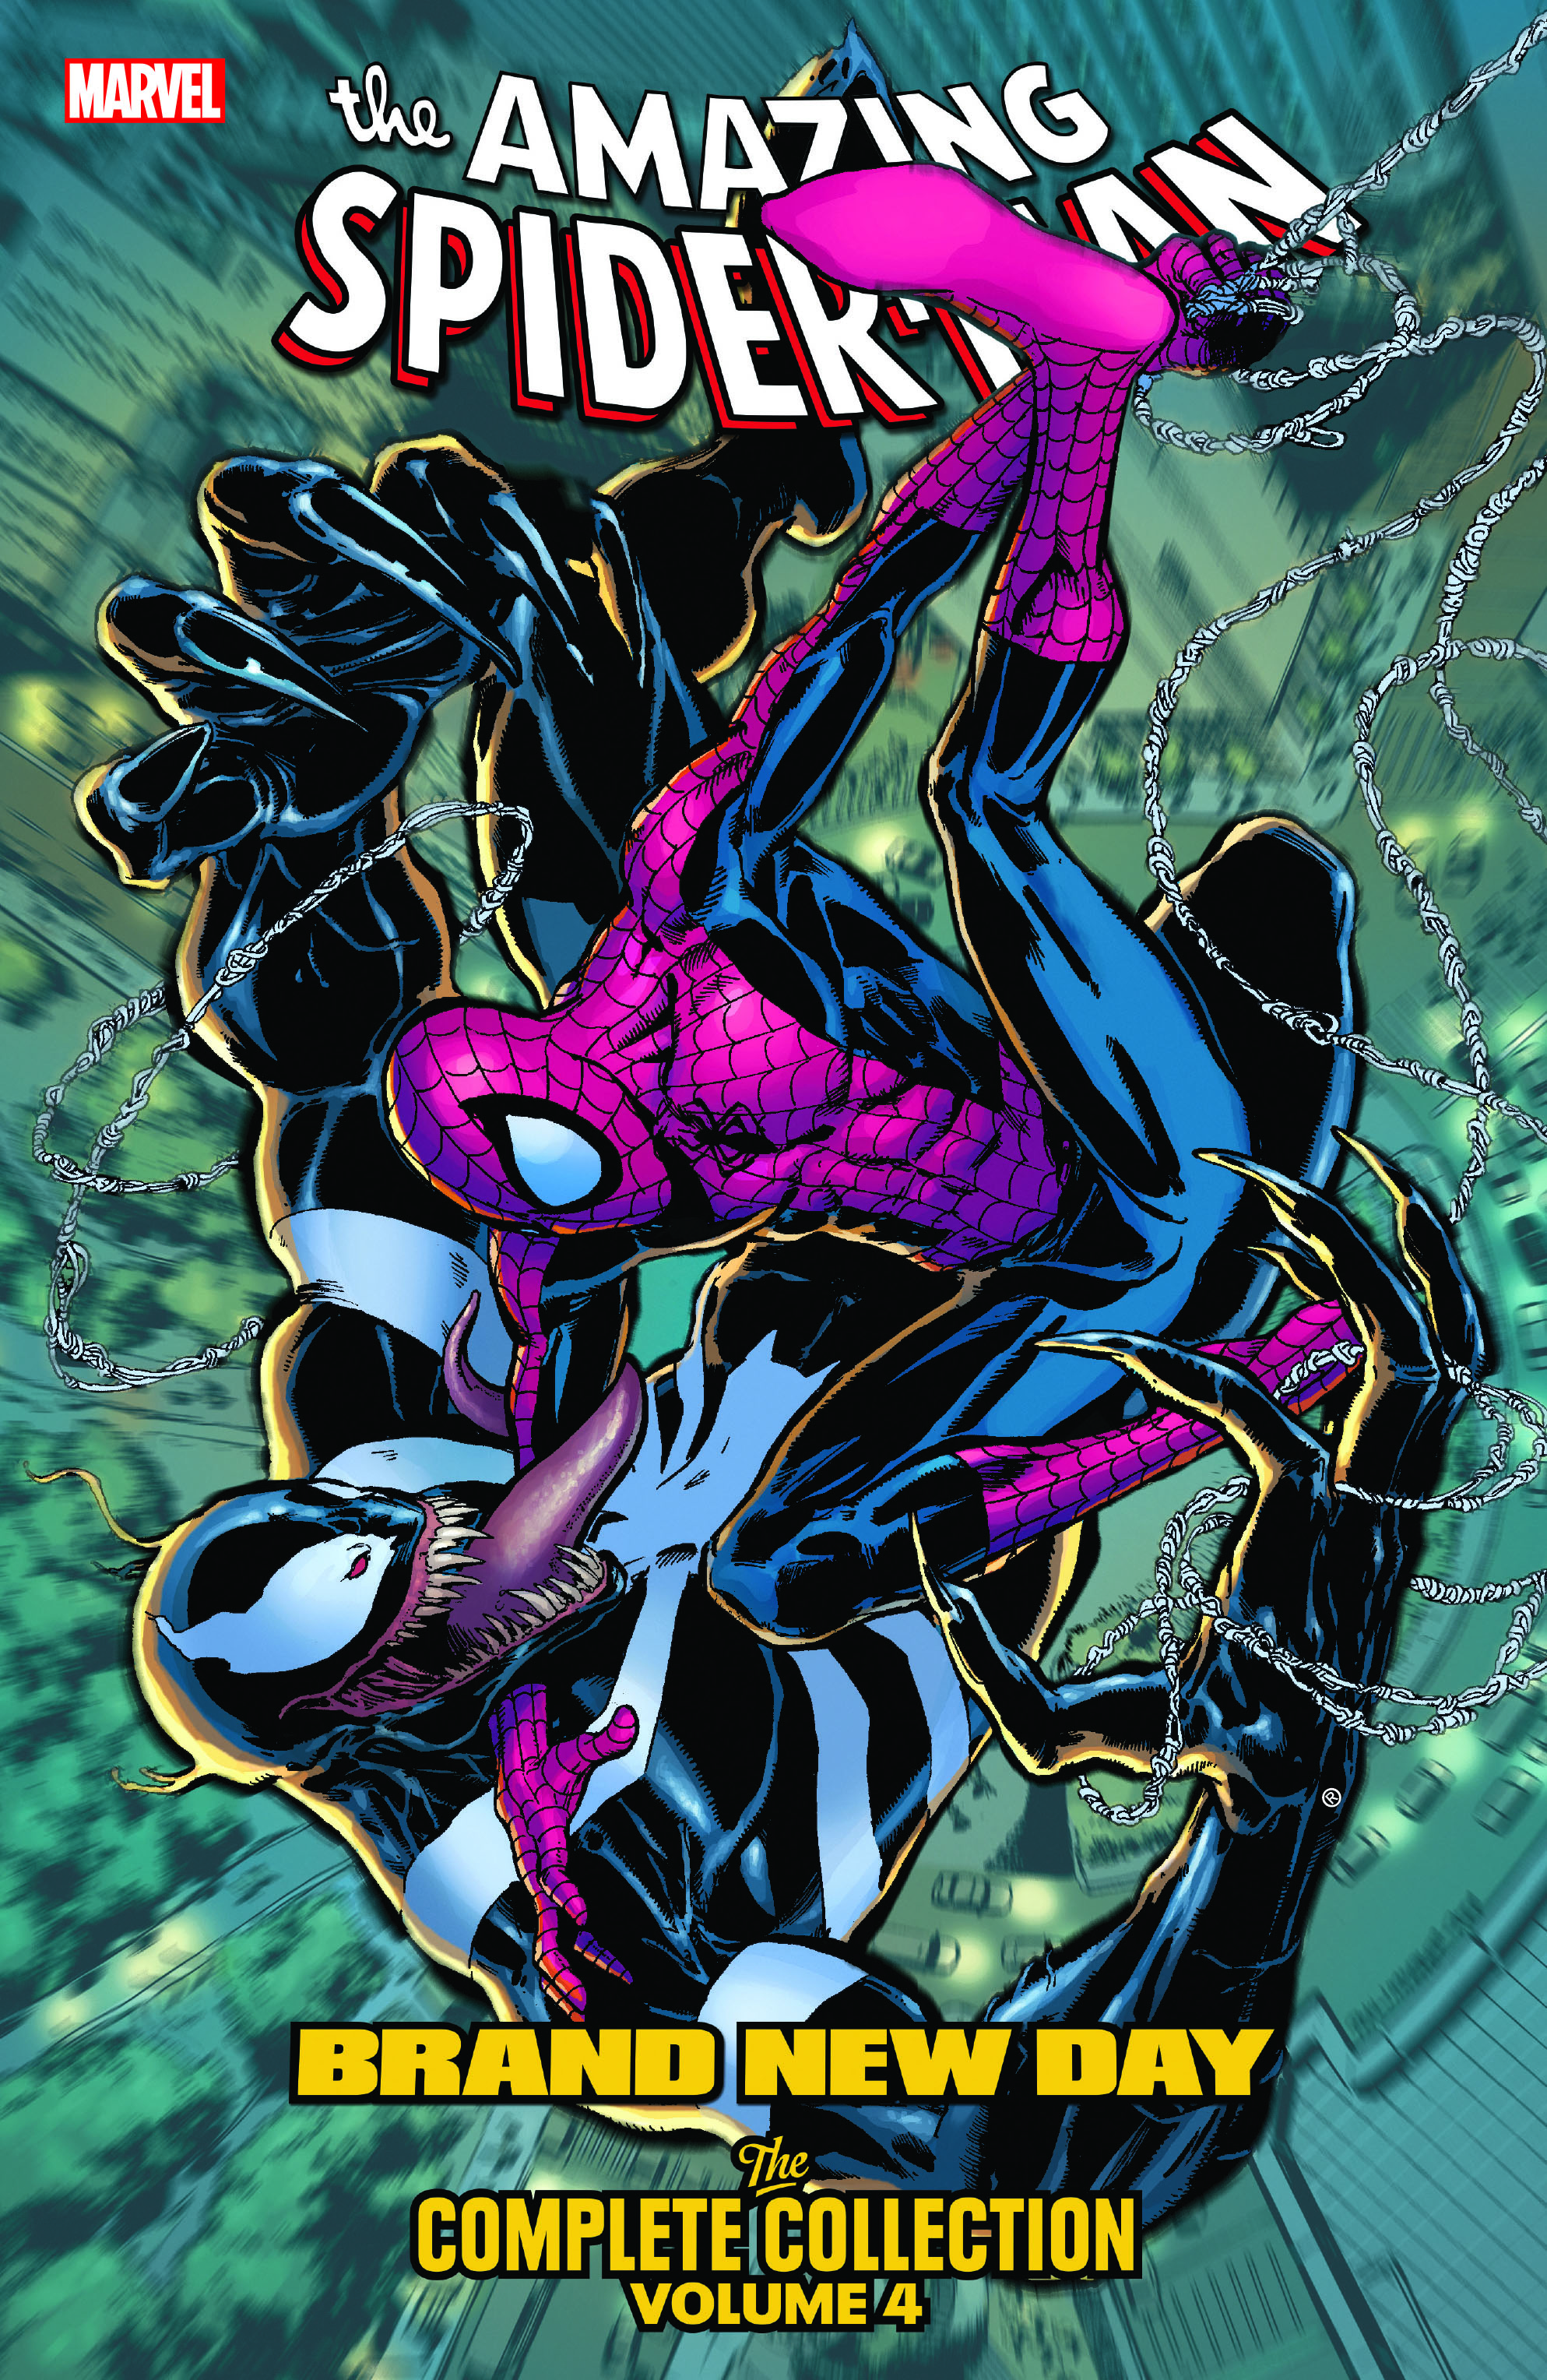 Spider-Man: Brand New Day - The Complete Collection Vol. 4 (Trade Paperback)